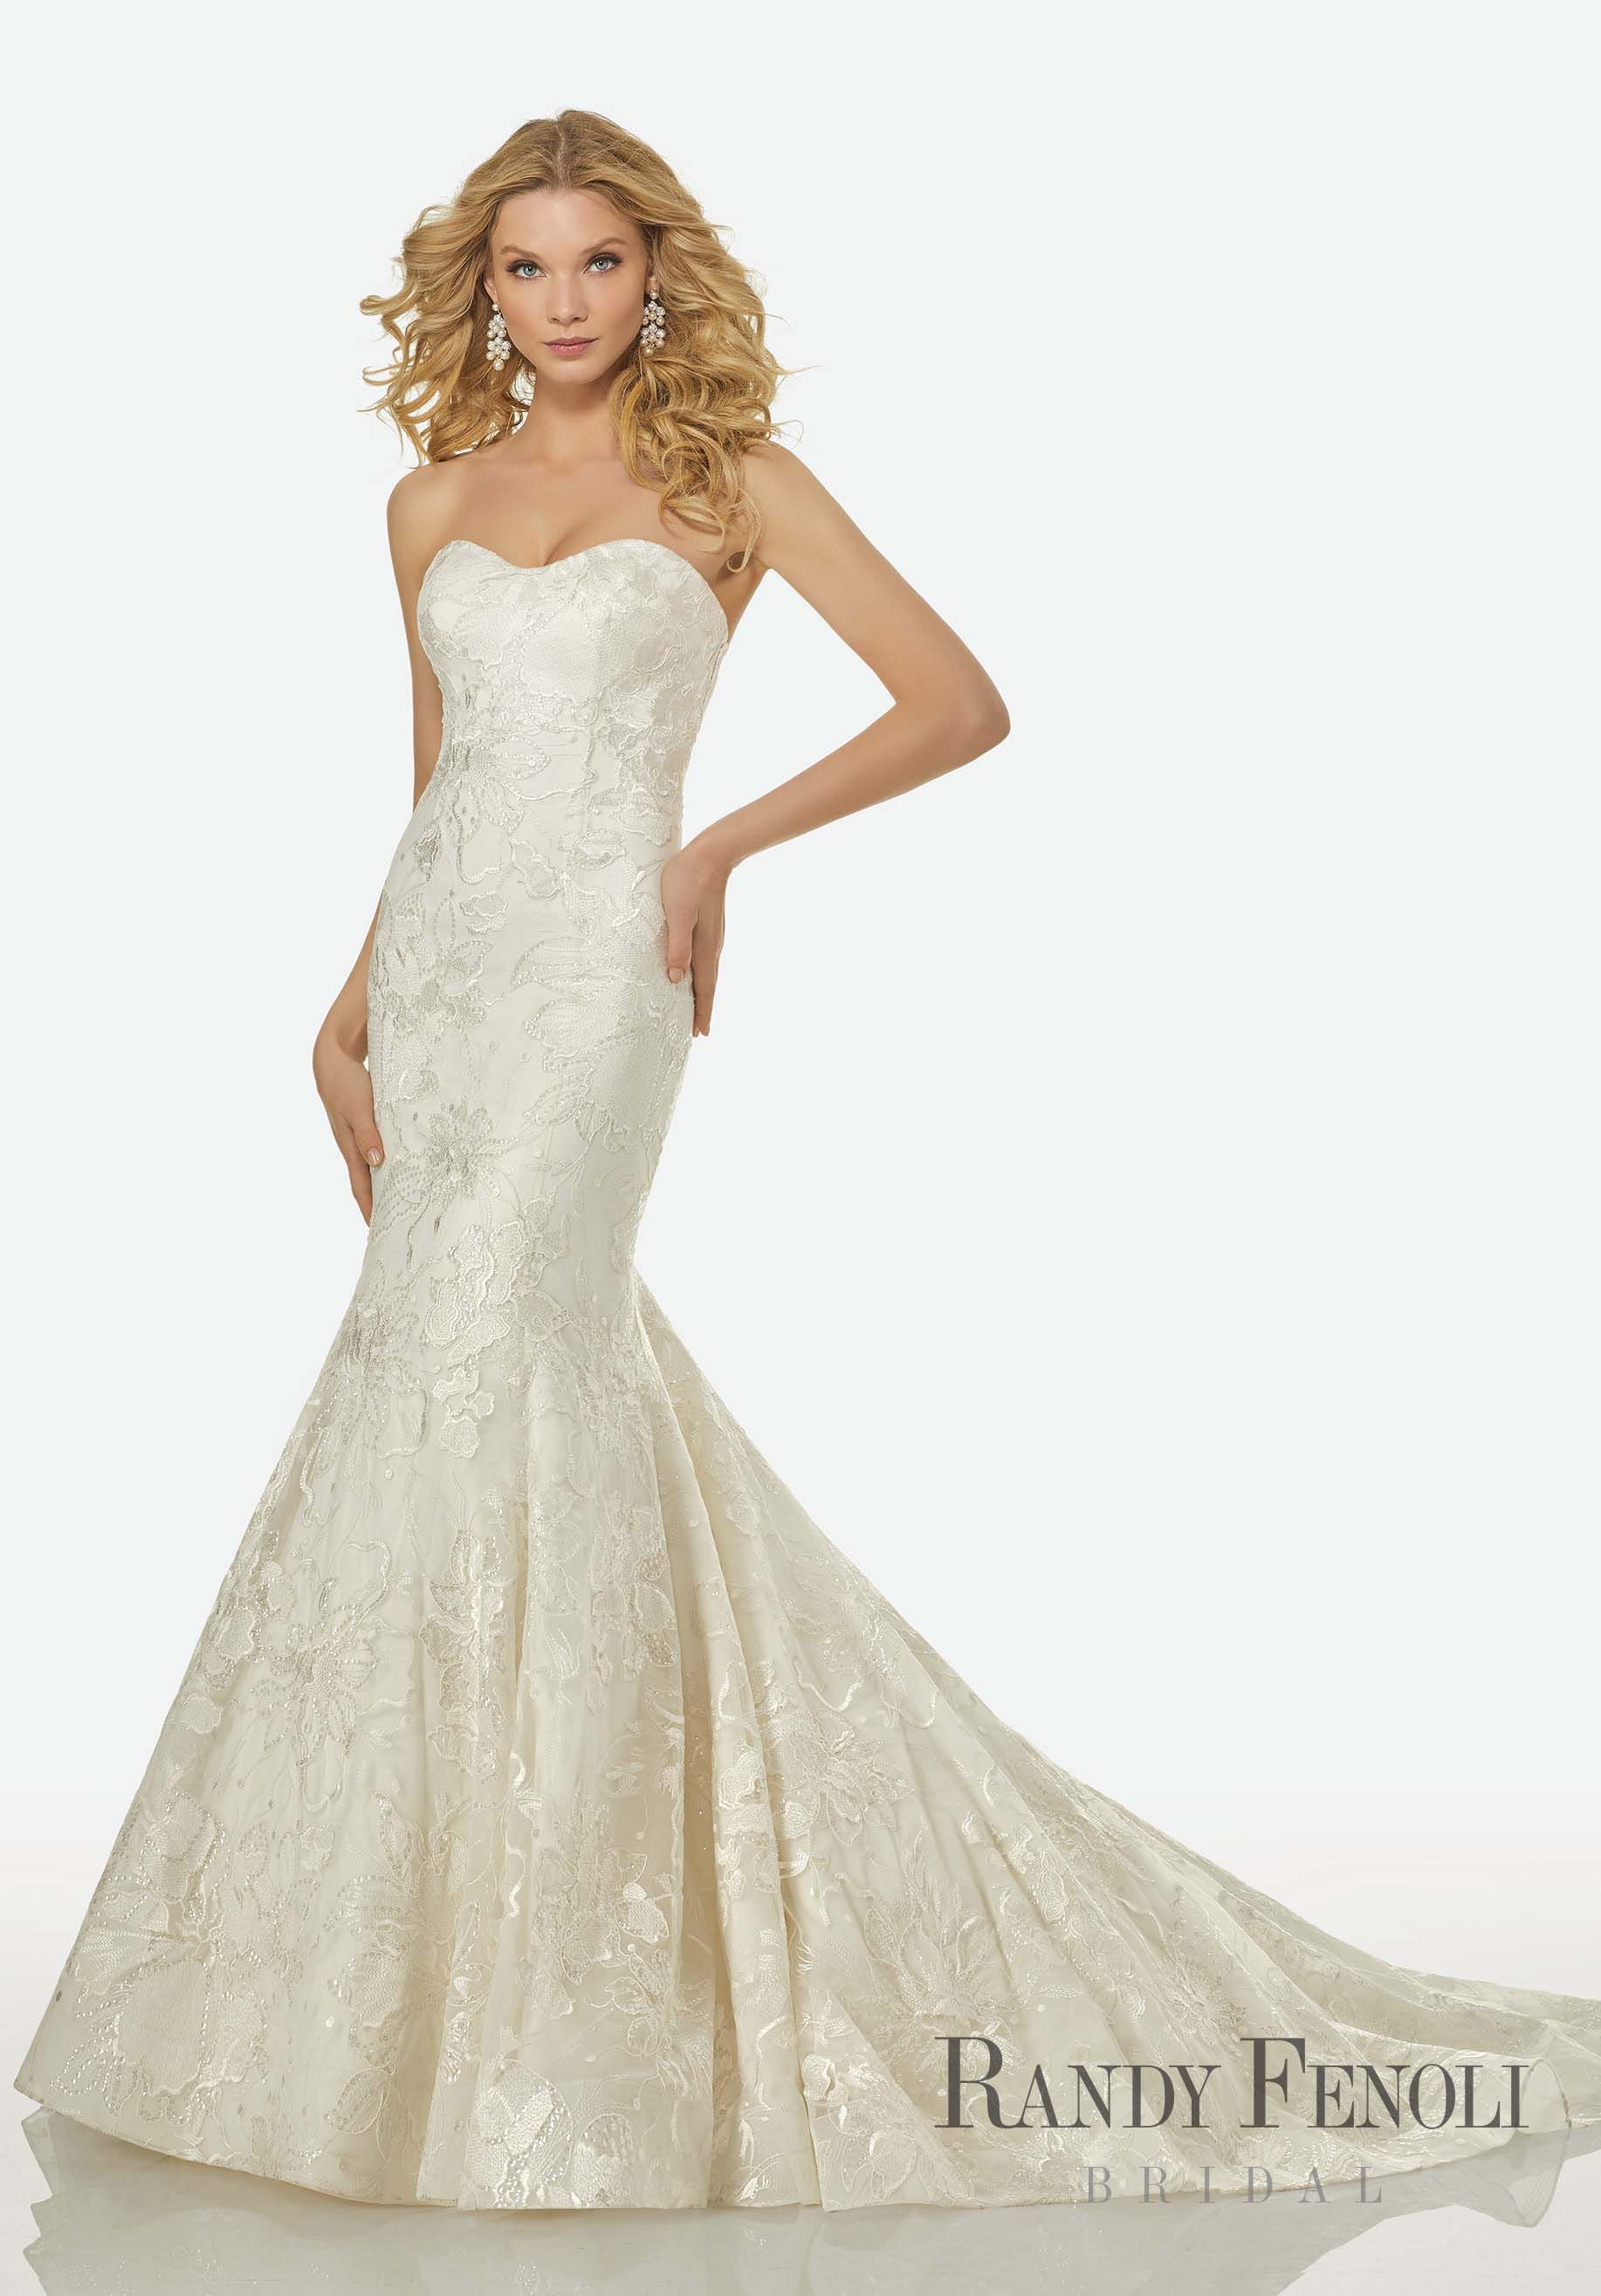 d7f21f9c564ed Randy Fenoli Bridal, Iris Wedding Dress | Style 3415. Strapless Mermaid Gown  with Large Floral Patterned, Beaded Lace. Modest Sweetheart Neckline.